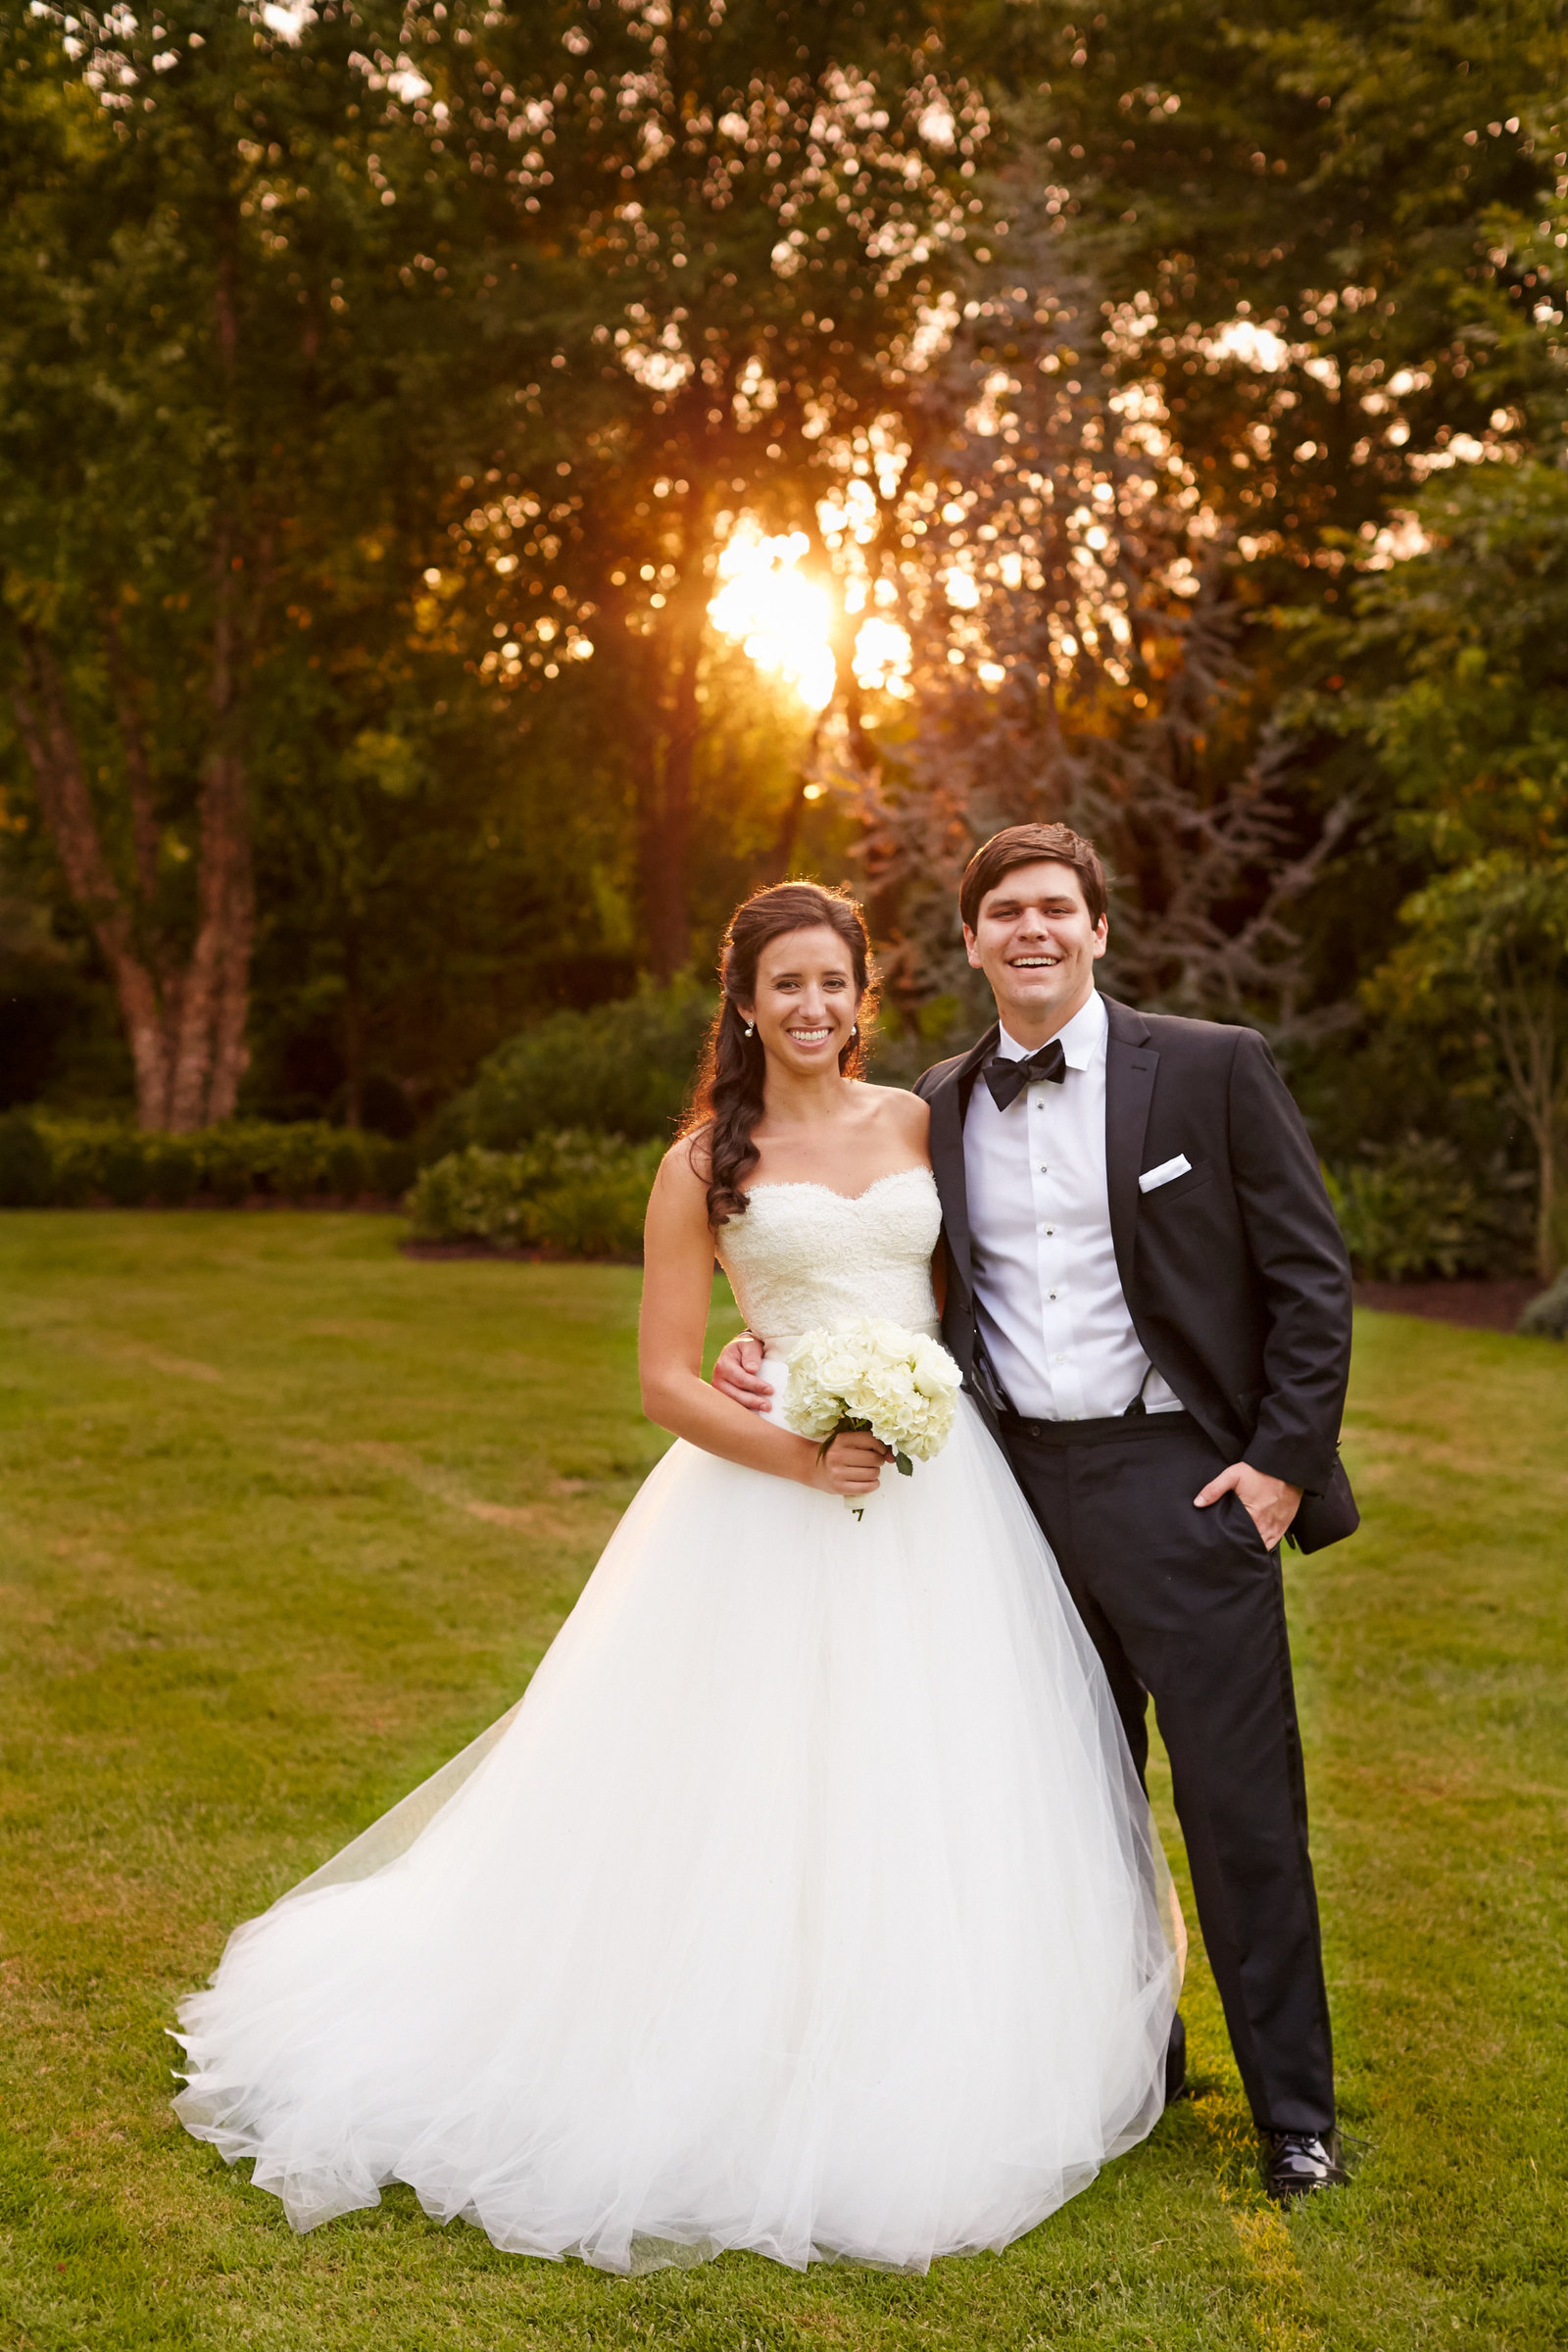 Nashville-Wedding-Photographer-Bride-and-Groom-at-Sunset